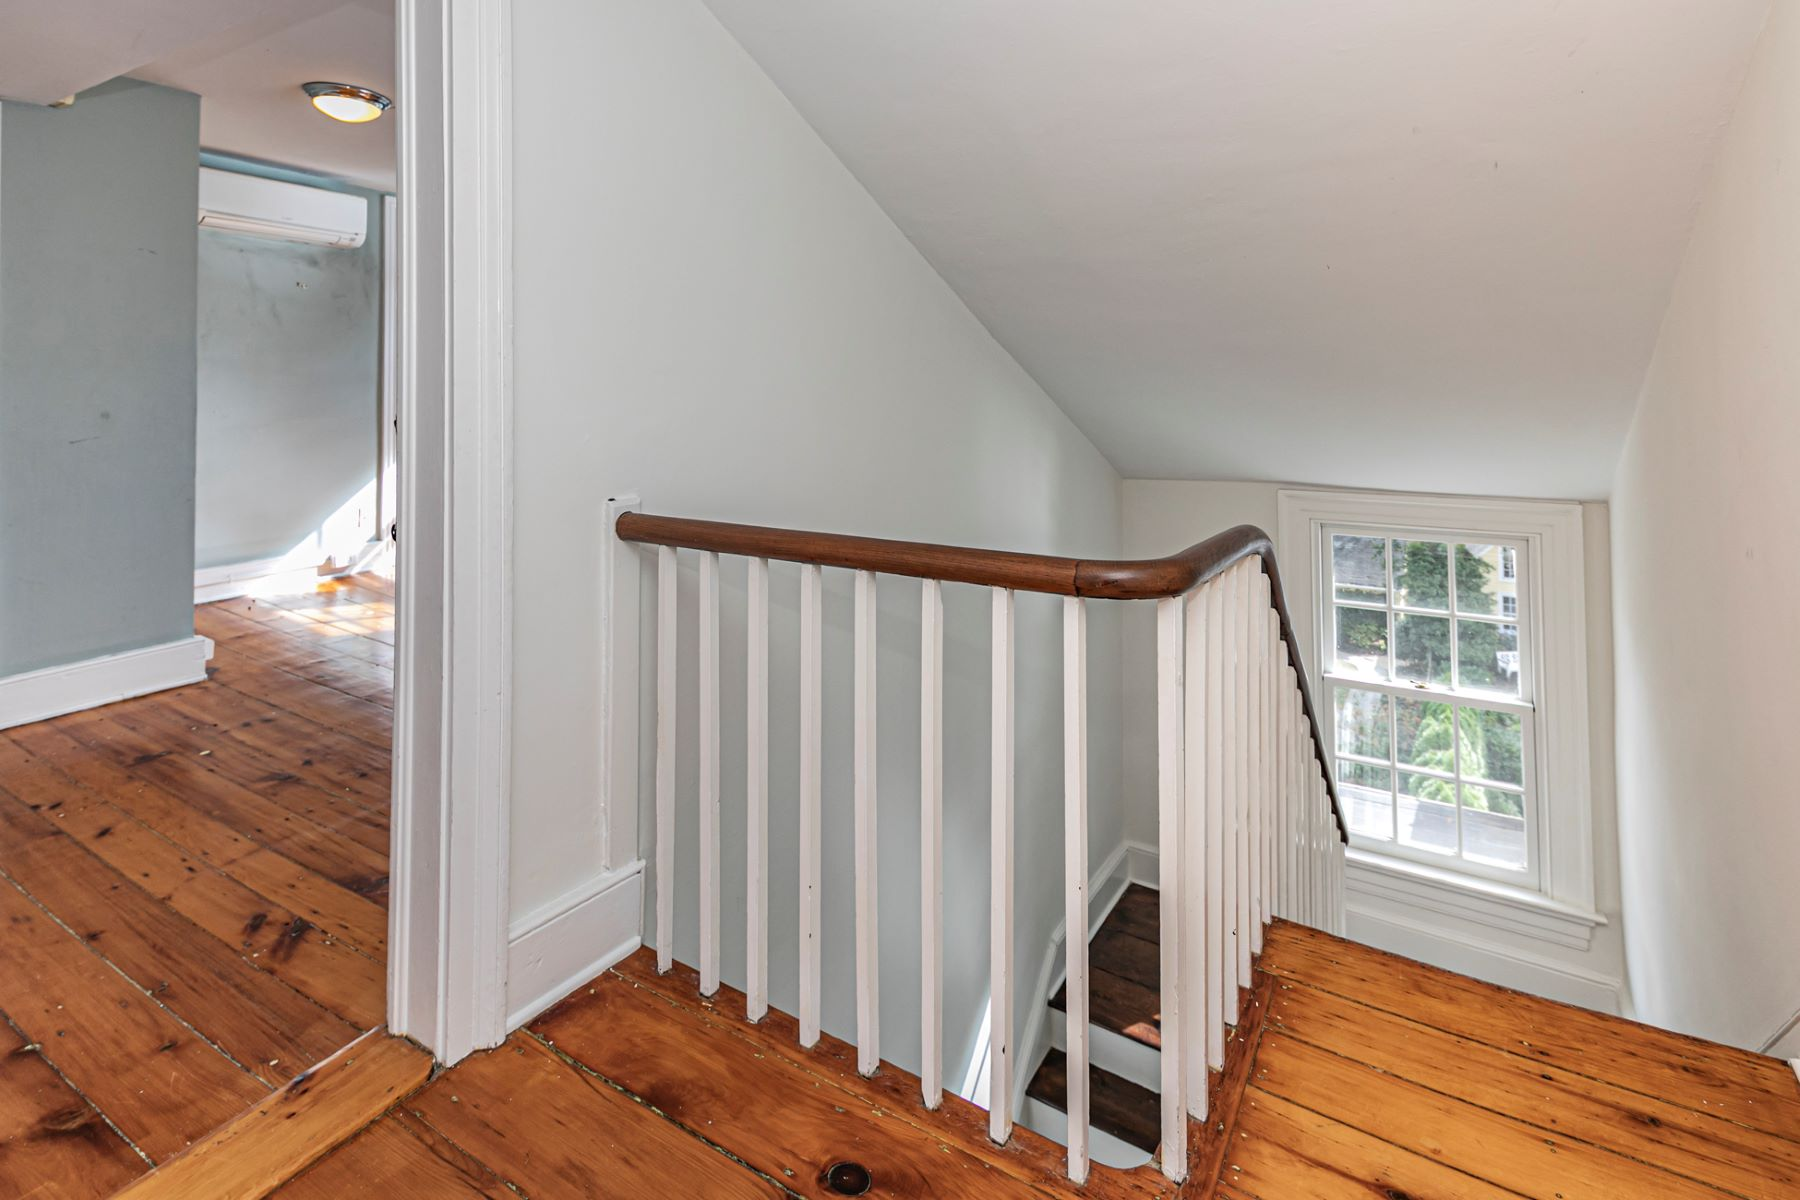 Additional photo for property listing at Newly Renovated 1825 Gem, Right in Town 40 Mercer Street, Princeton, Nueva Jersey 08540 Estados Unidos